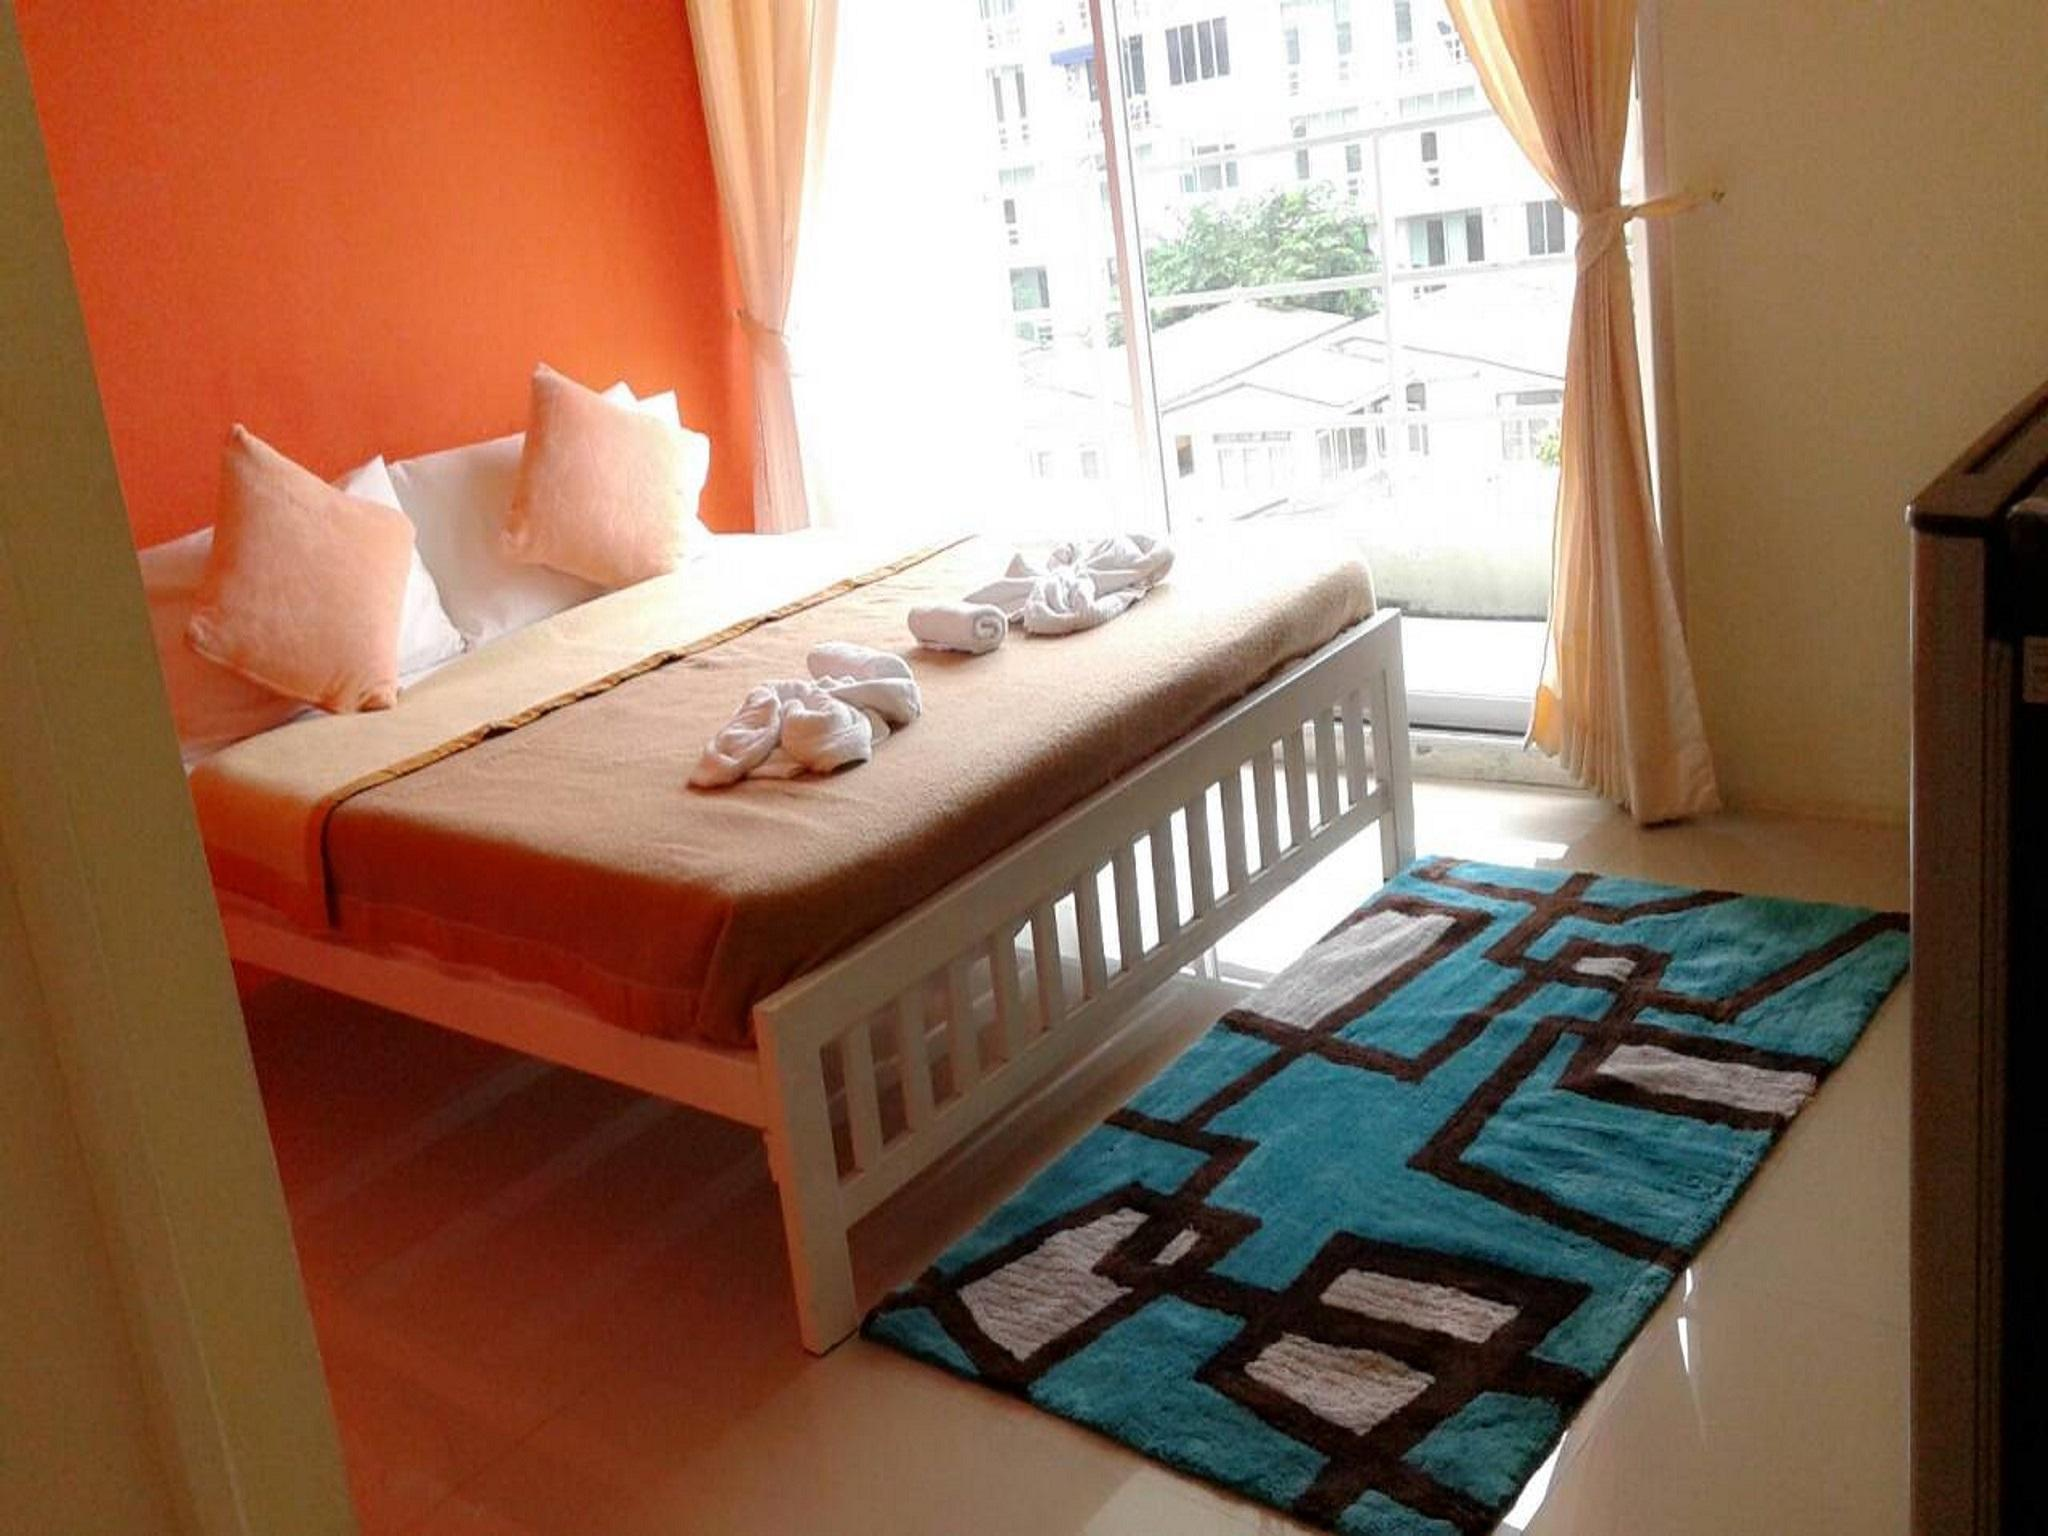 Hotel Murah di Sukhumvit Bangkok - The City at Fifty Hostel